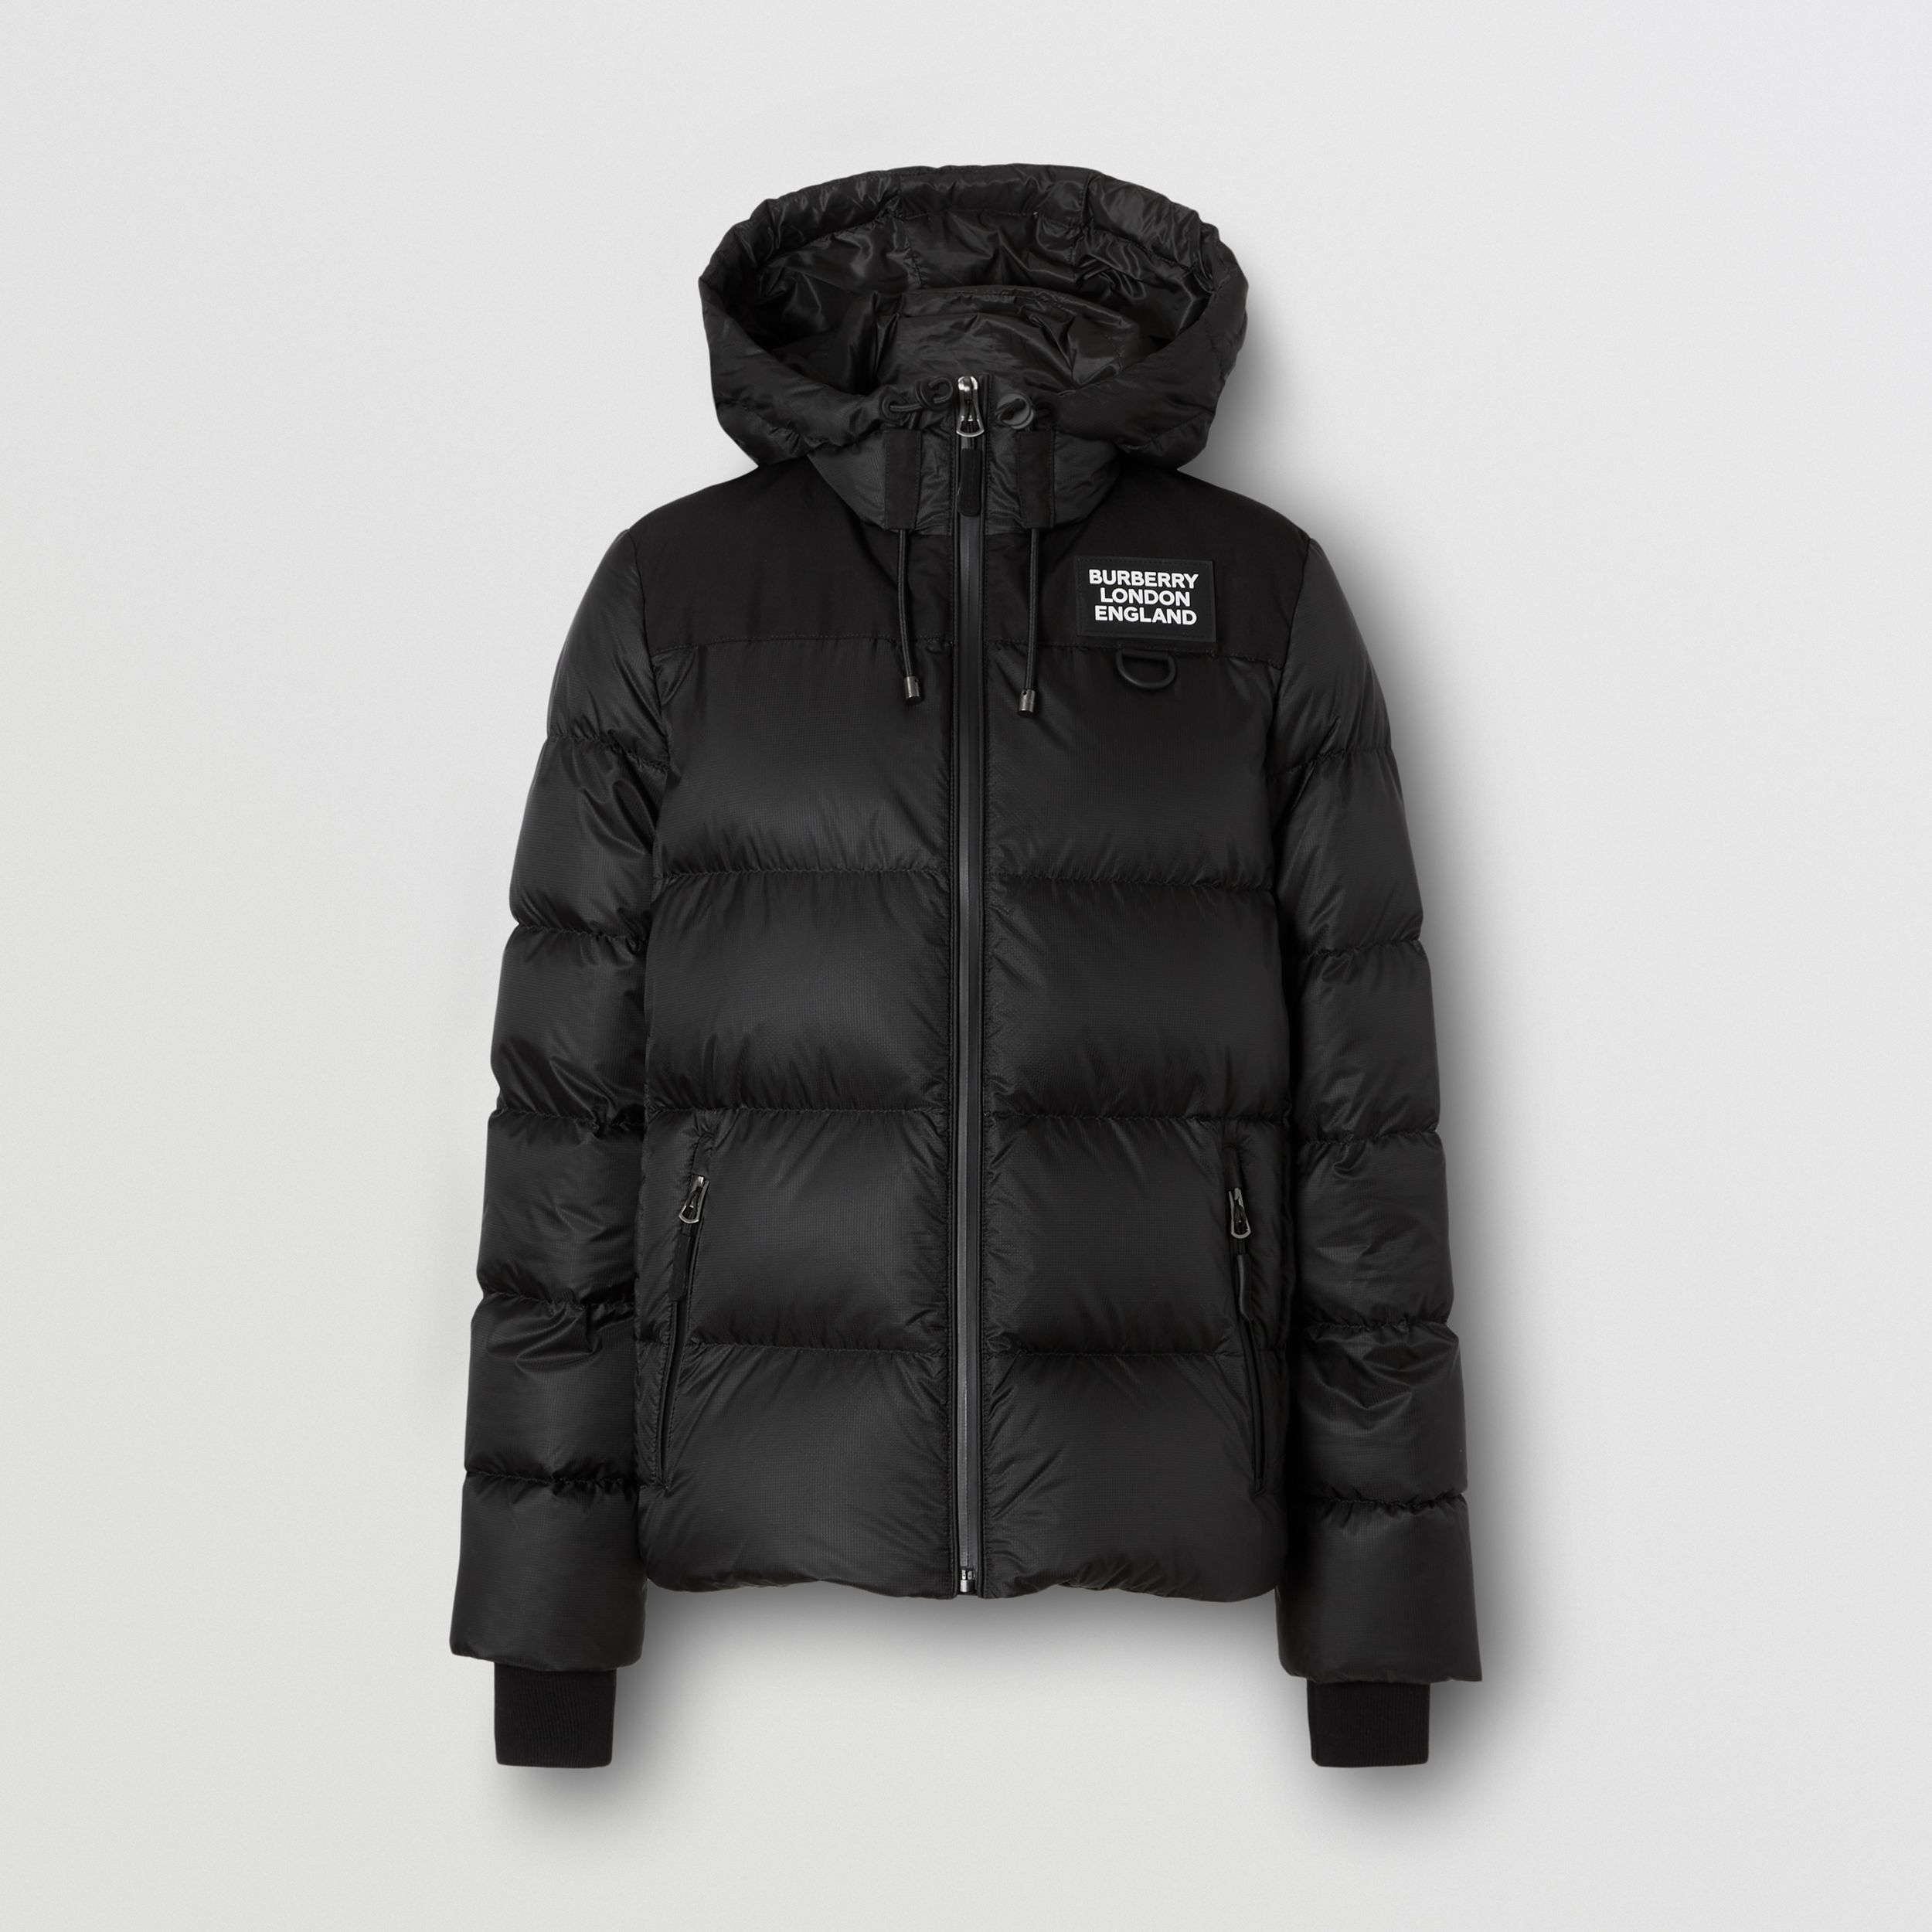 Logo Appliqué Hooded Puffer Jacket in Black - Women | Burberry - 1